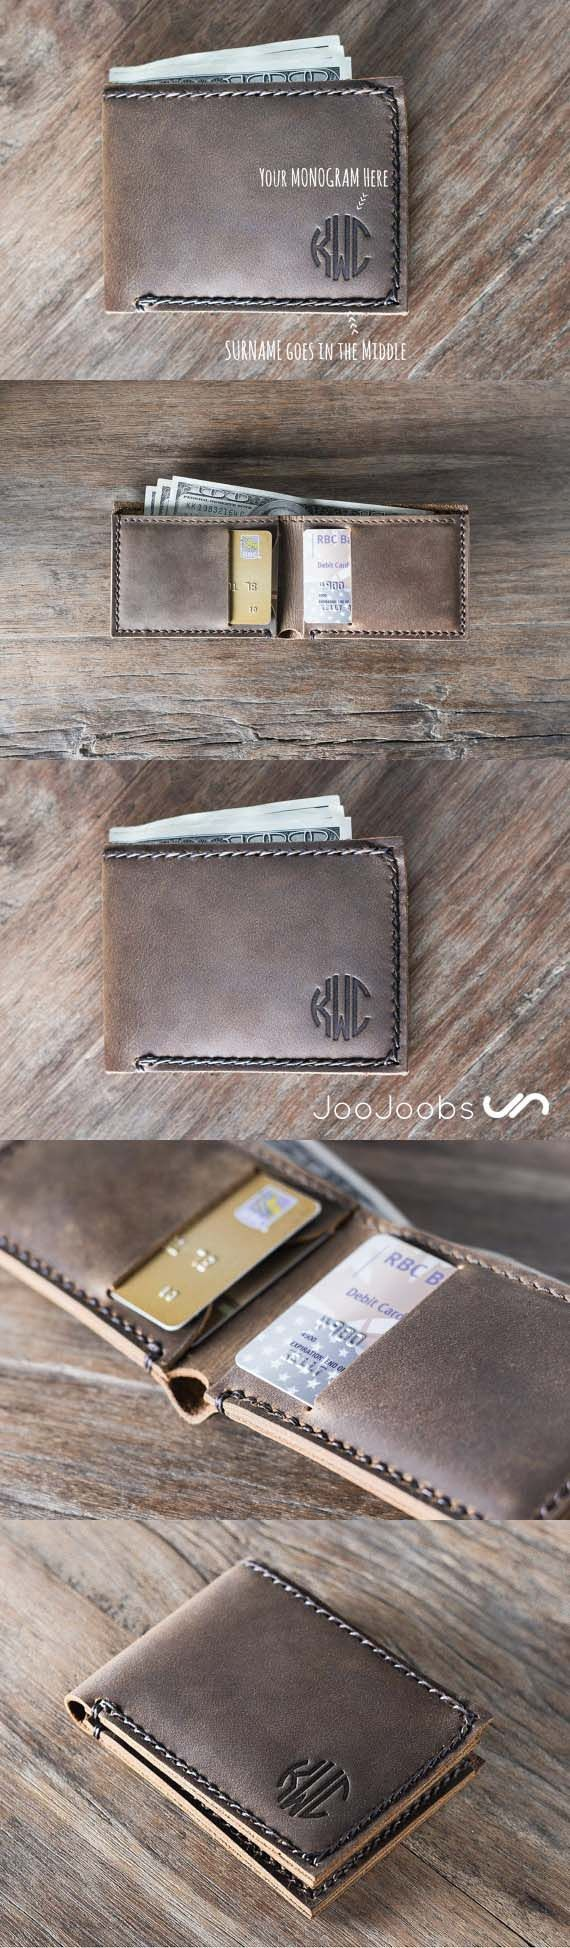 Super slim bifold wallet. This handmade leather wallet is the perfect gift for groomsmen. Get their initials monogrammed, to commemorate your big day. Celebrate in style!! #monogram #Wallet